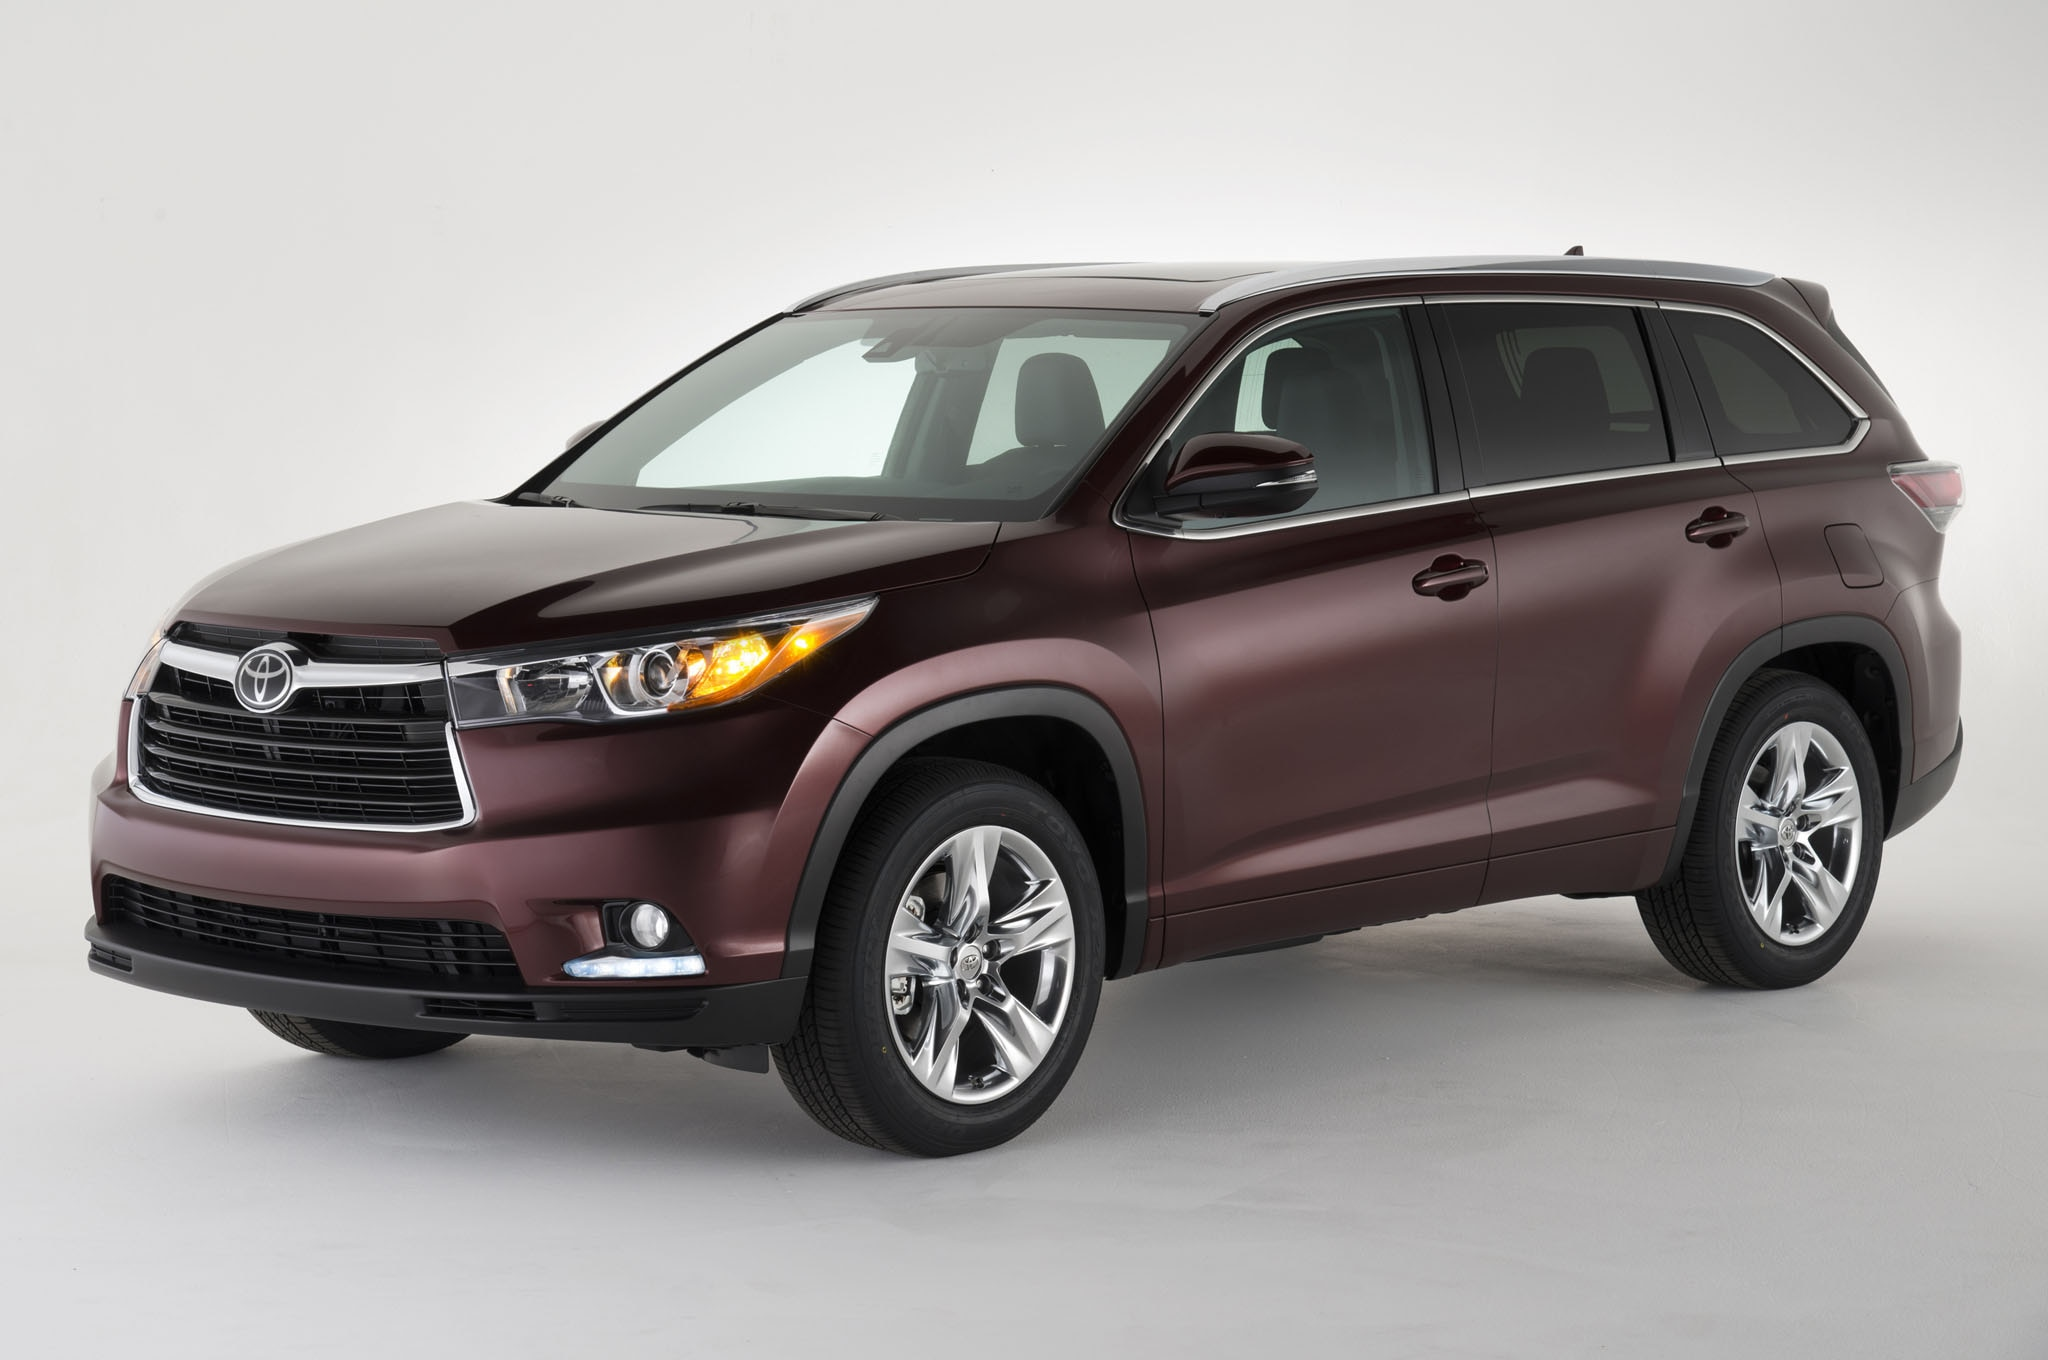 2014 Toyota Highlander Front Three Quarters11